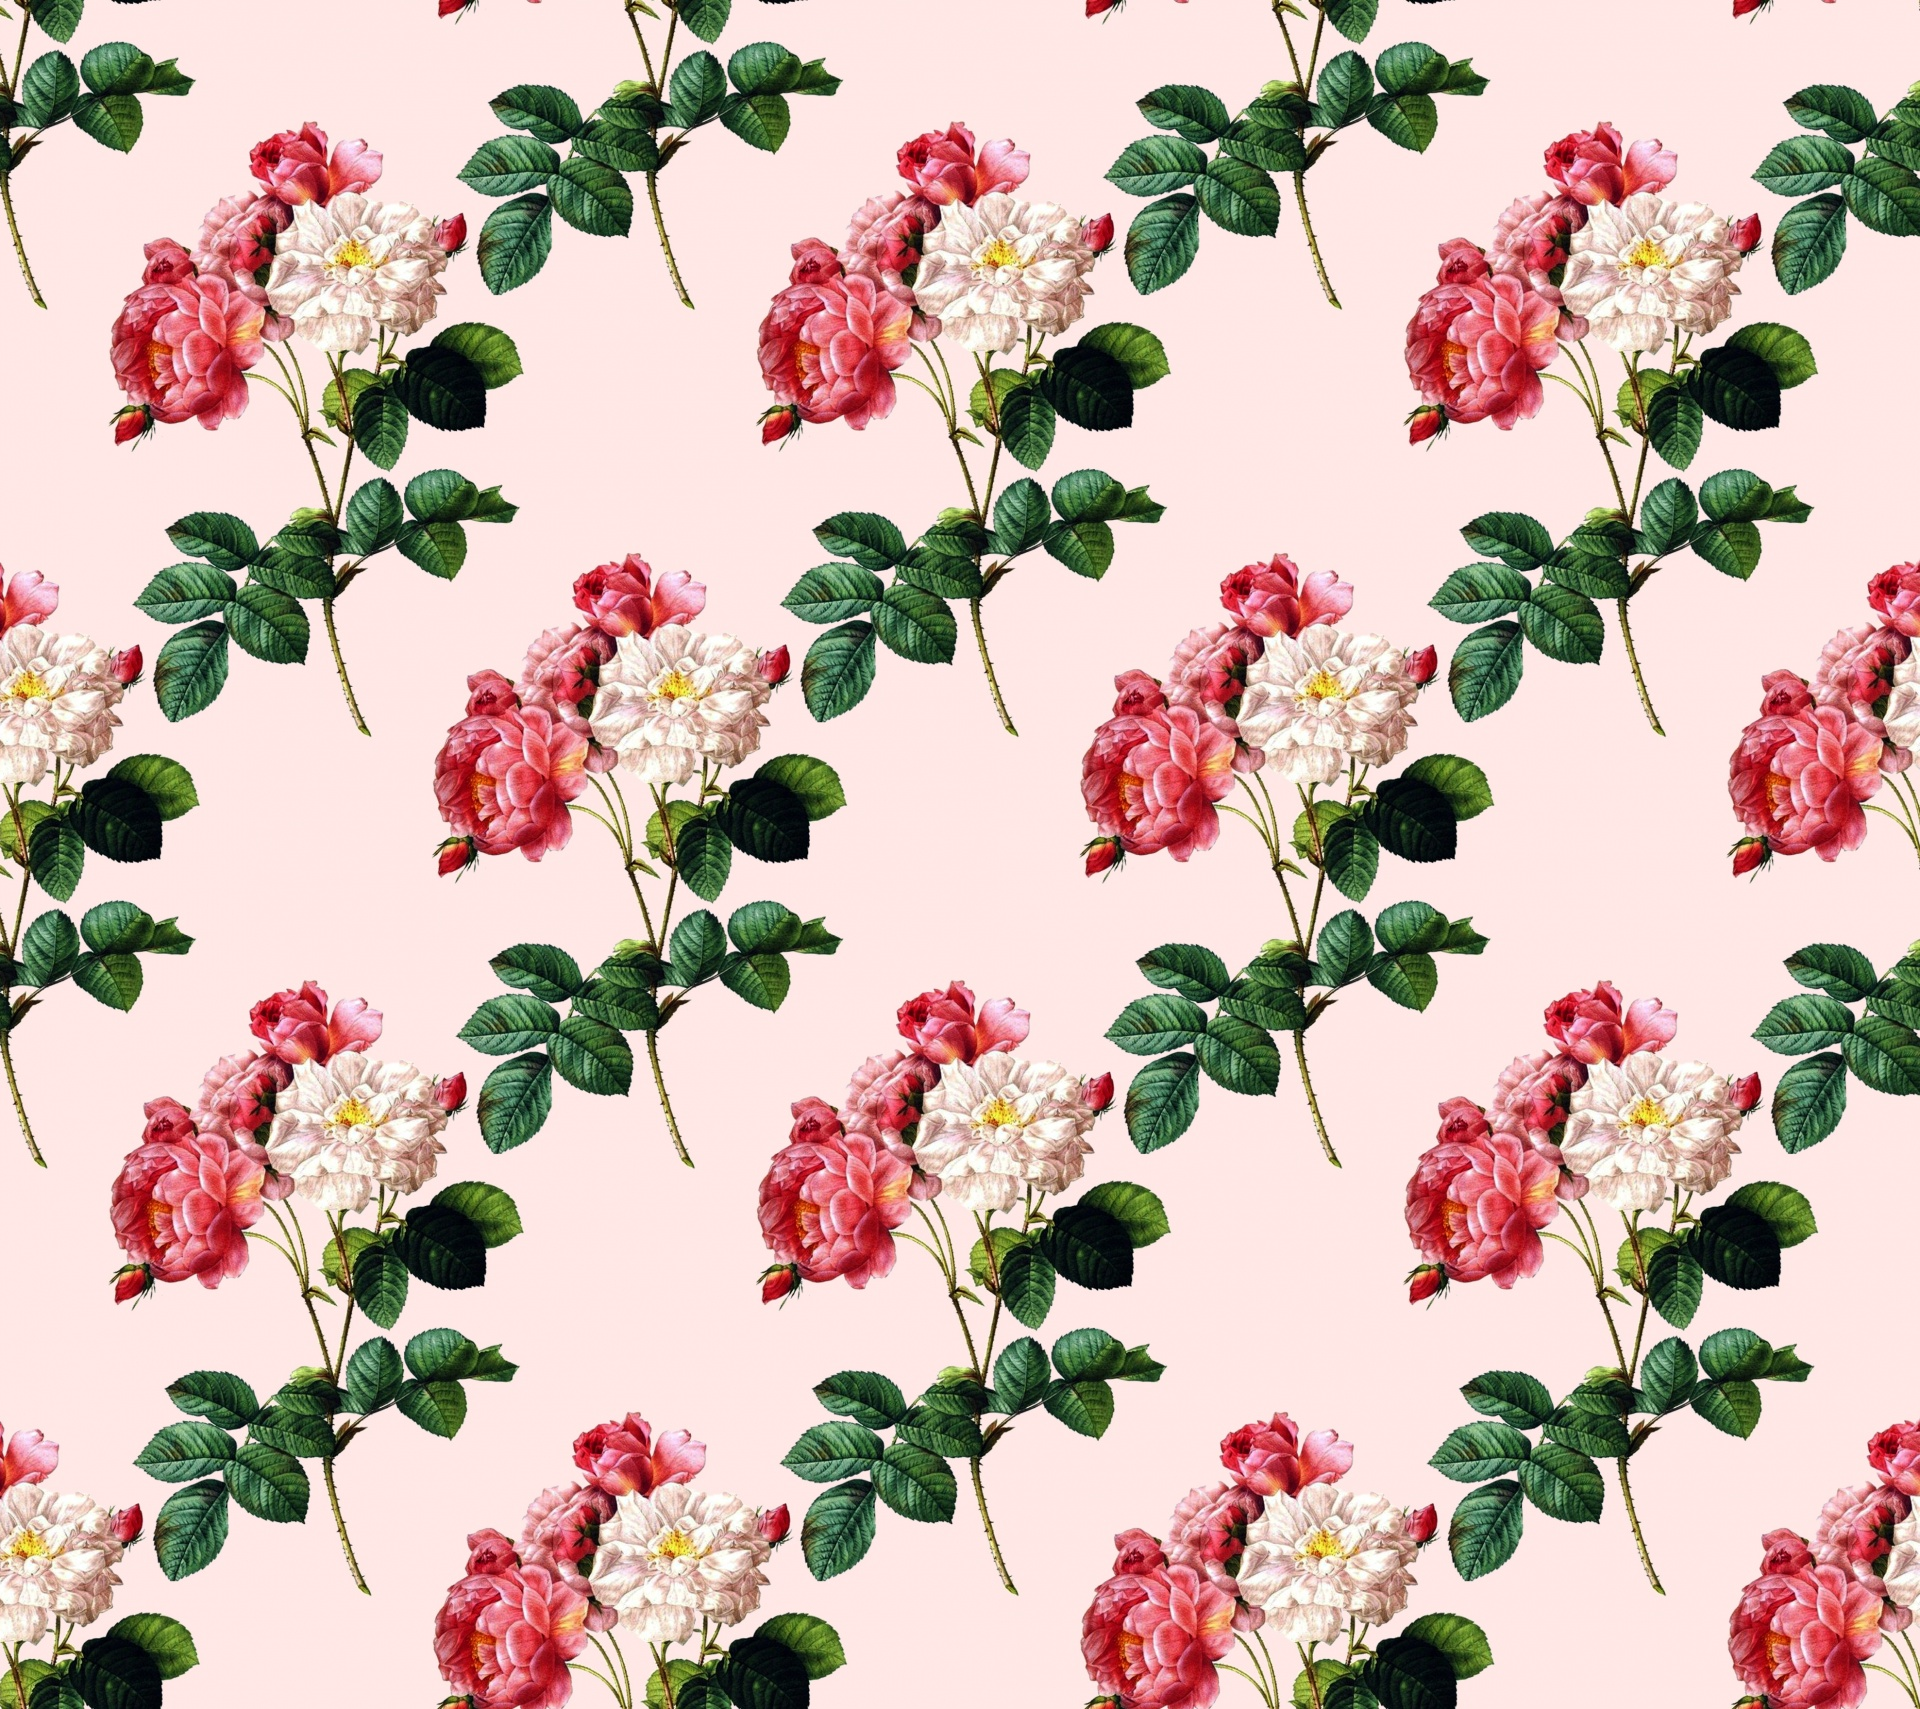 Roses Rose Flowers Floral Background Free Image From Needpix Com